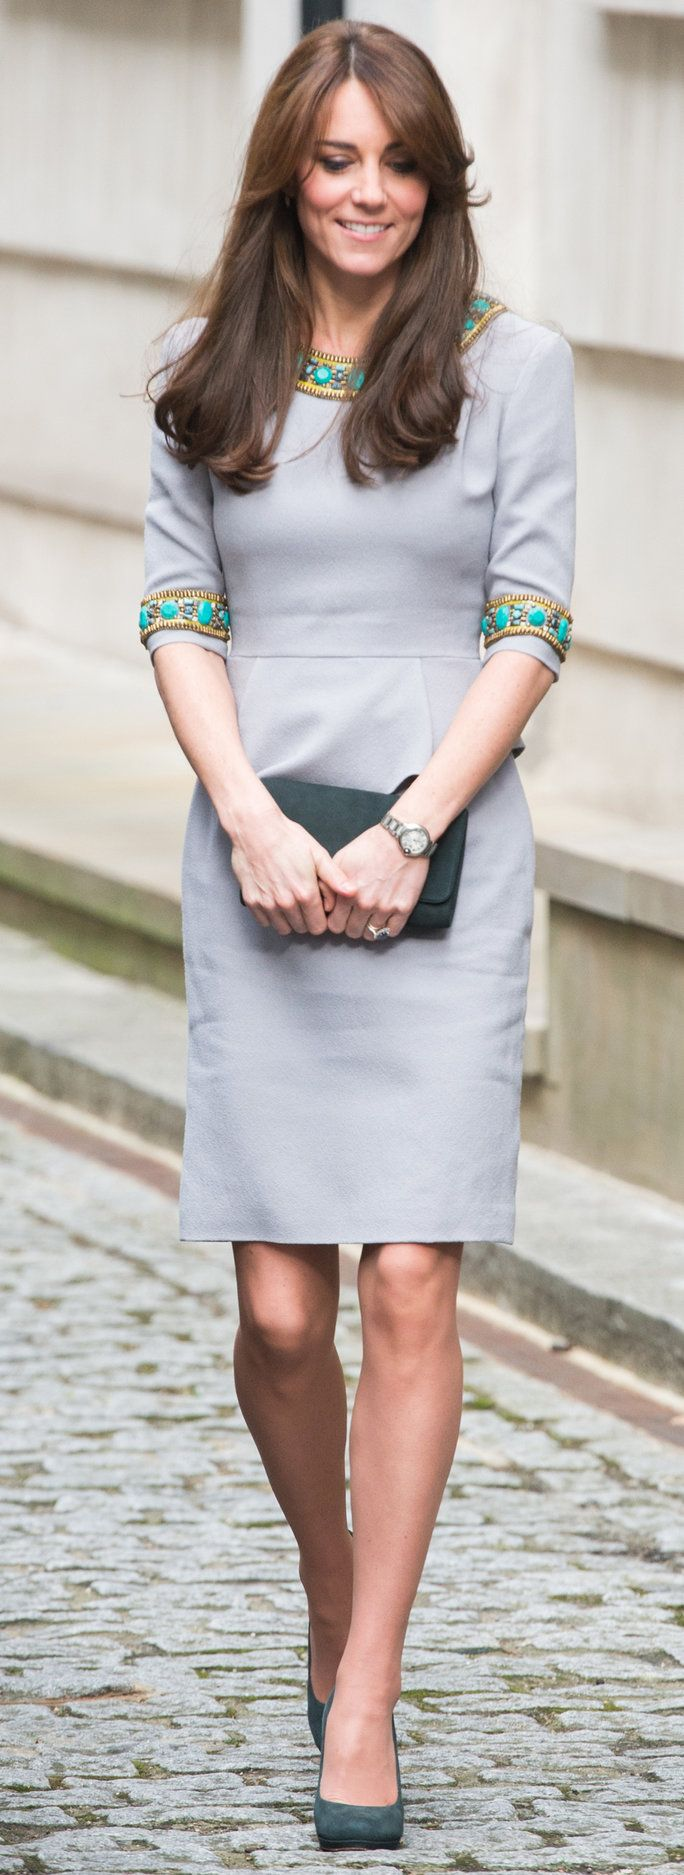 Kate Middleton wore a Matthew Williamson dress with turquoise and gold beading to the Place2Be Headteacher Conference.